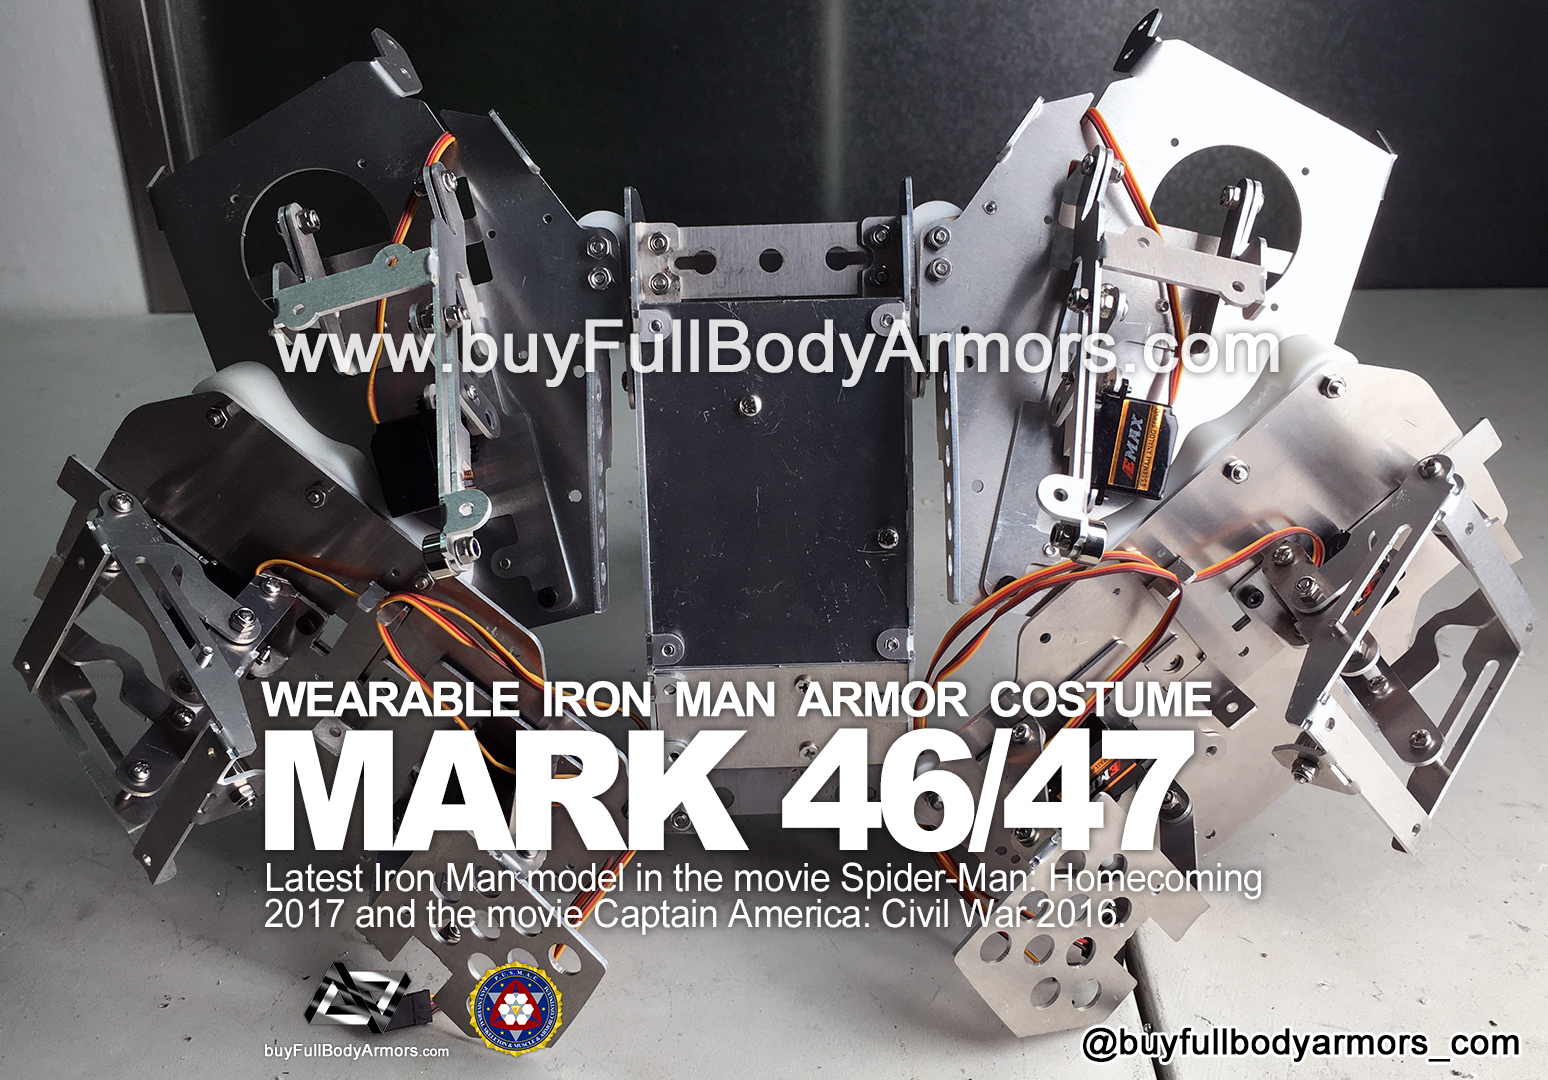 The Motorized Open-Close Mechanical Structure of the Back Armor - the Wearable Iron Man Mark 47 / 46 Armor Costume Suit prototype 2